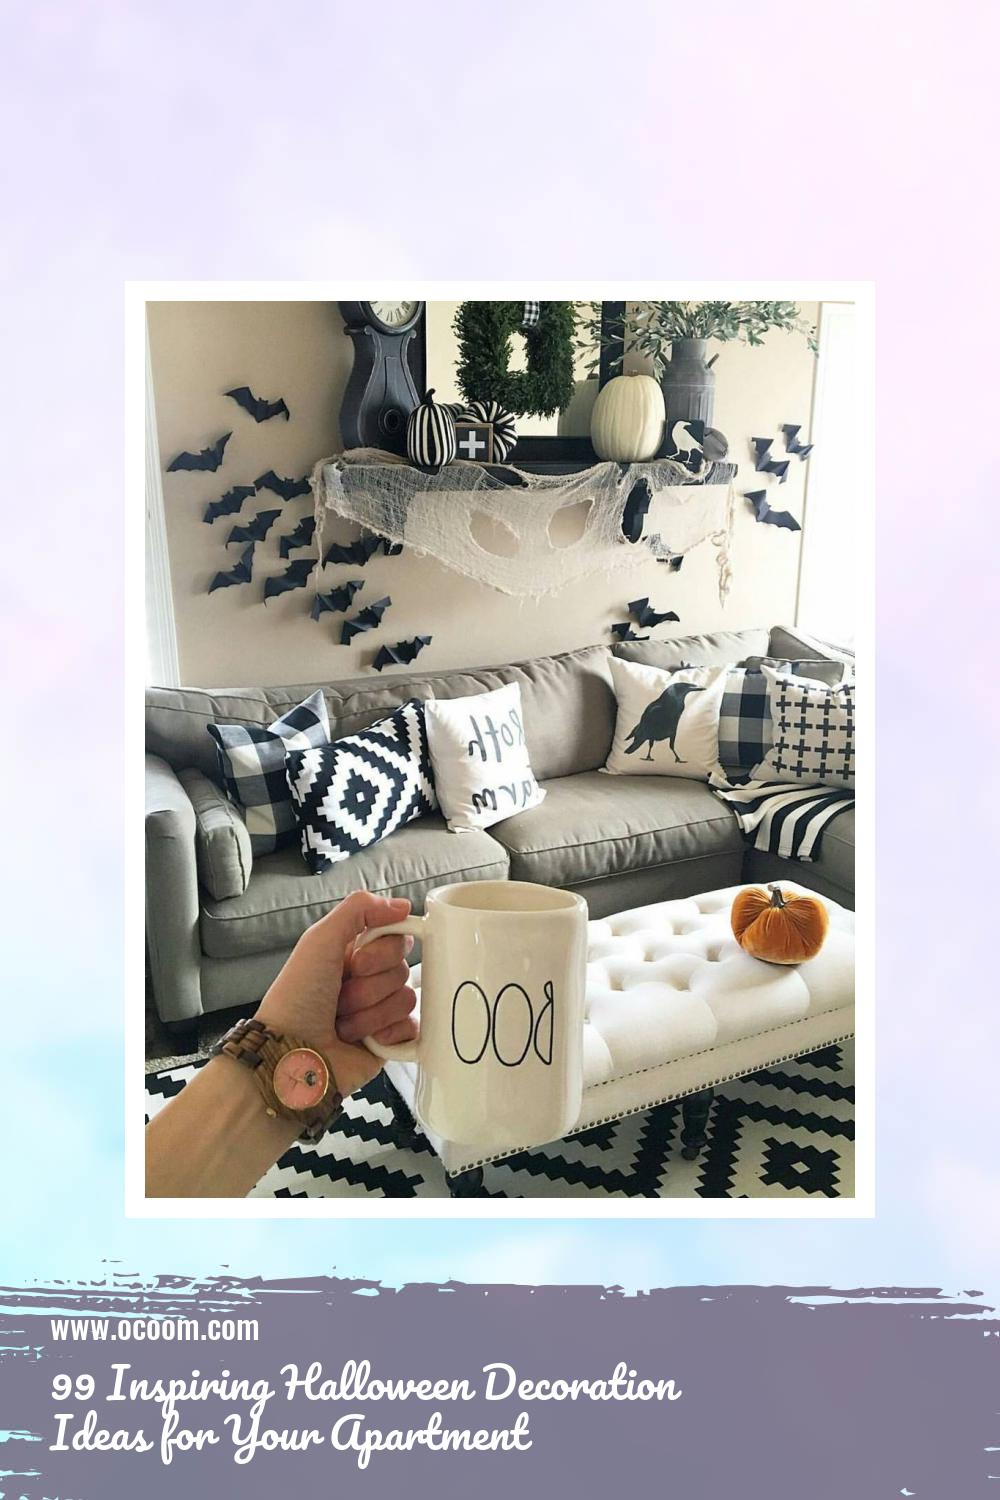 99 Inspiring Halloween Decoration Ideas for Your Apartment 46